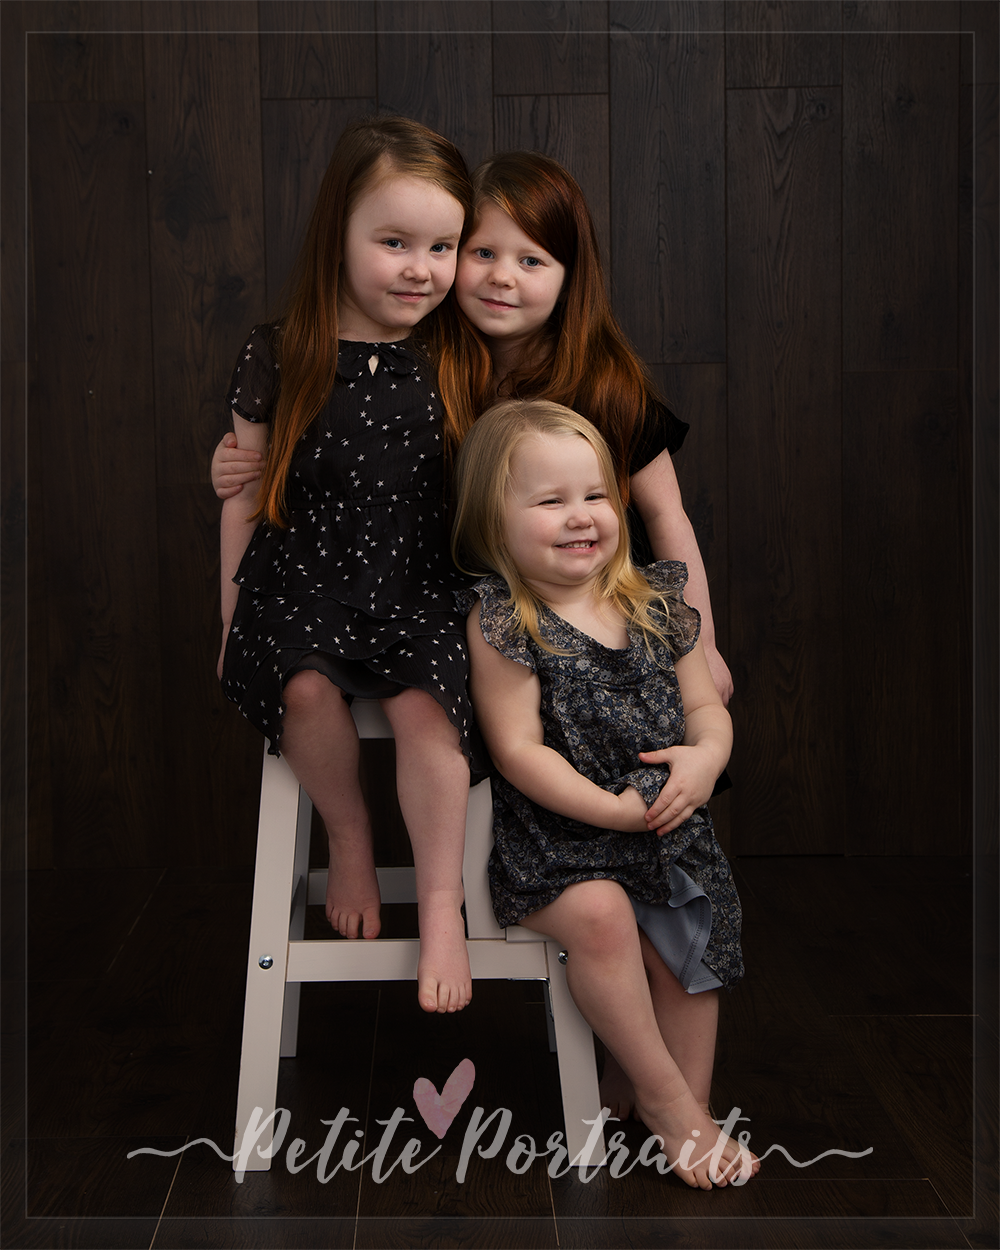 family-photographer-sheffield-childrens-photography-rotherham-petite-portraits-sisters